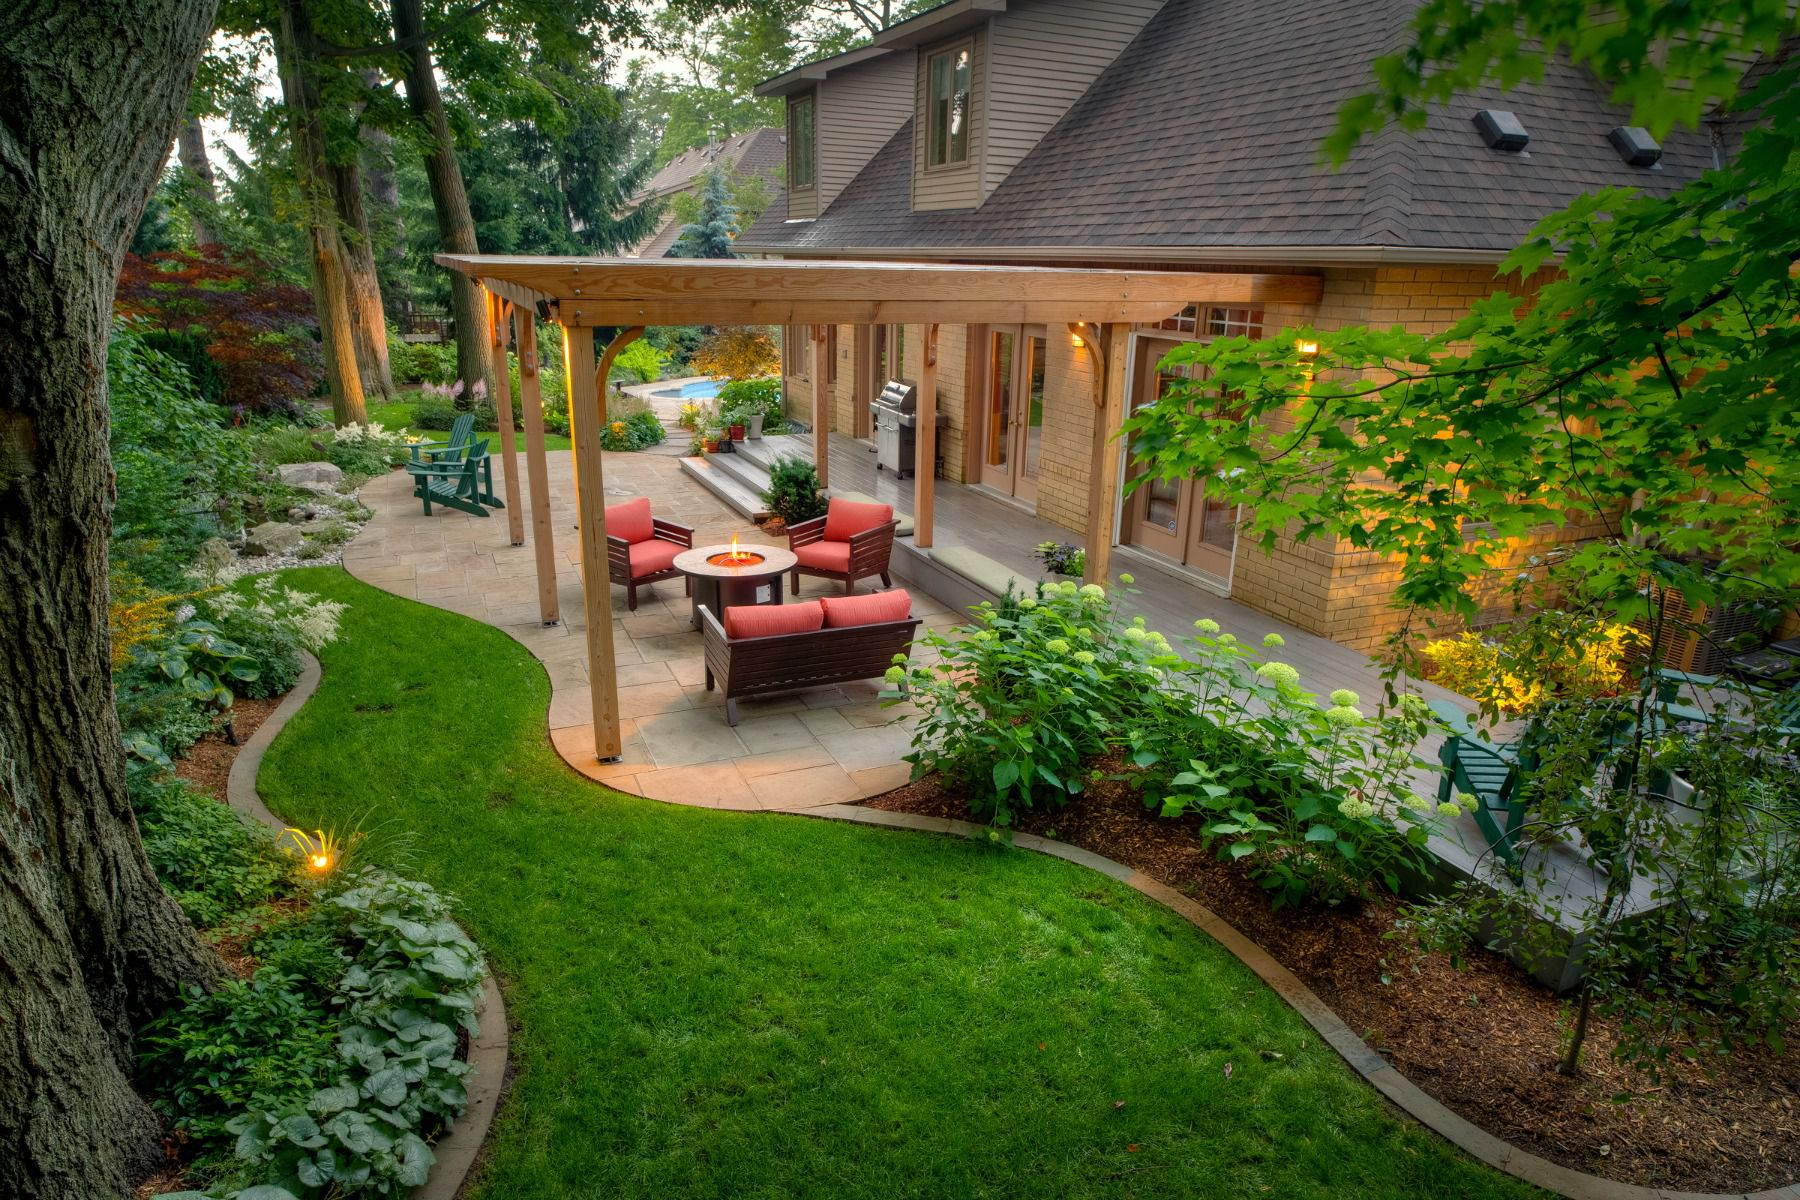 49 Backyard Landscaping Ideas to Inspire You on Backyard Lawn Designs id=49748